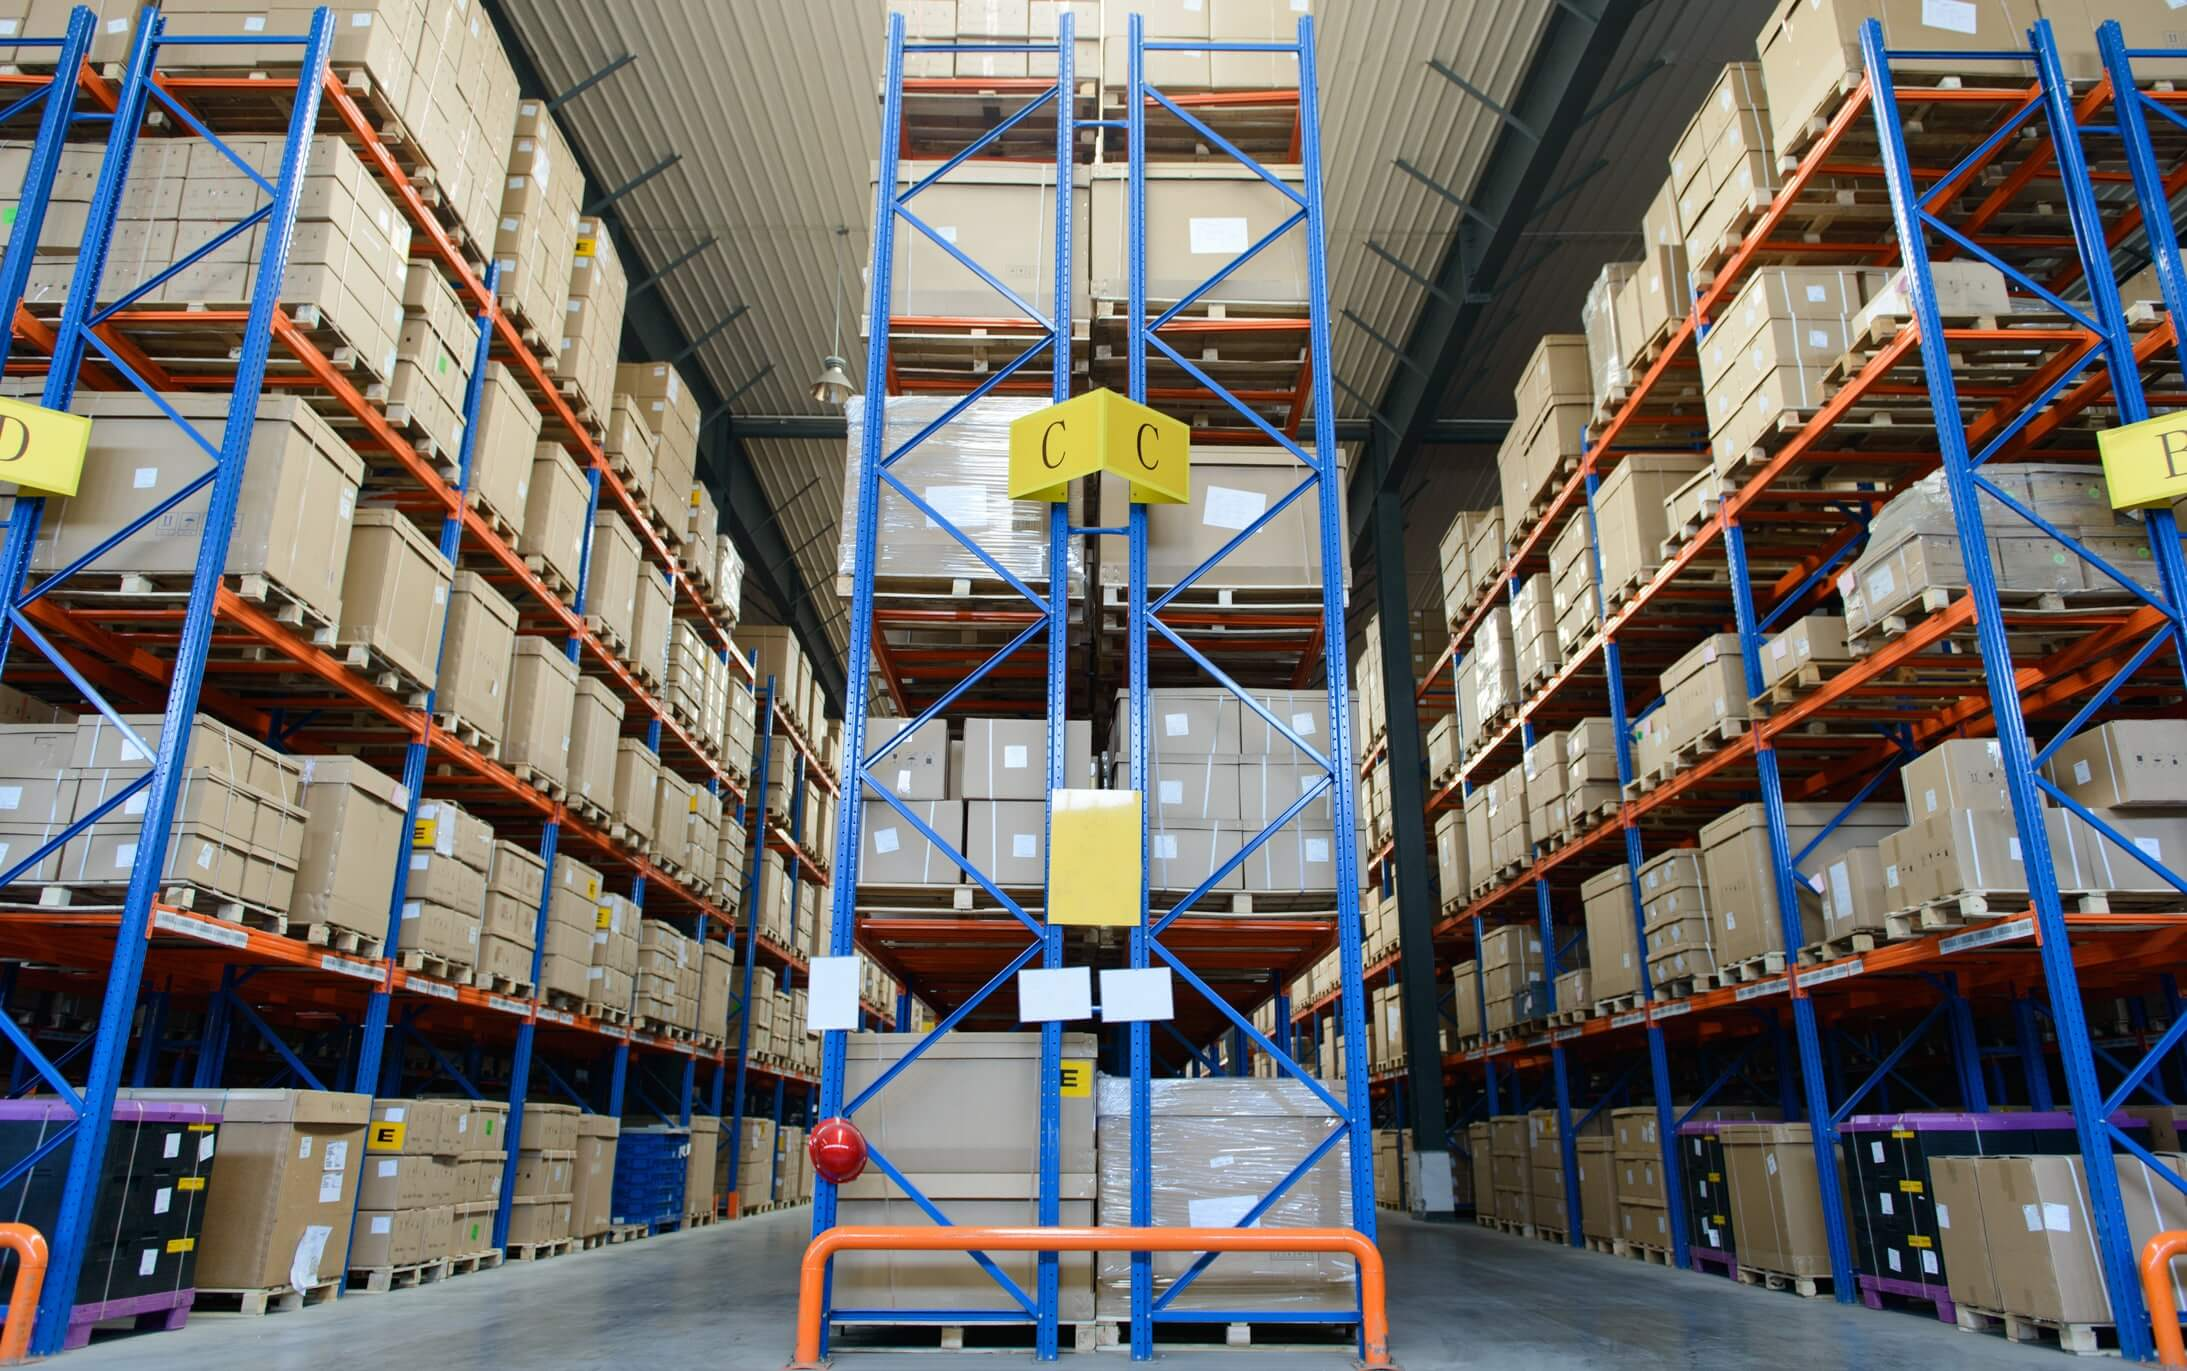 Nobody's buying? The reasons for poor inventory turnover might surprise you